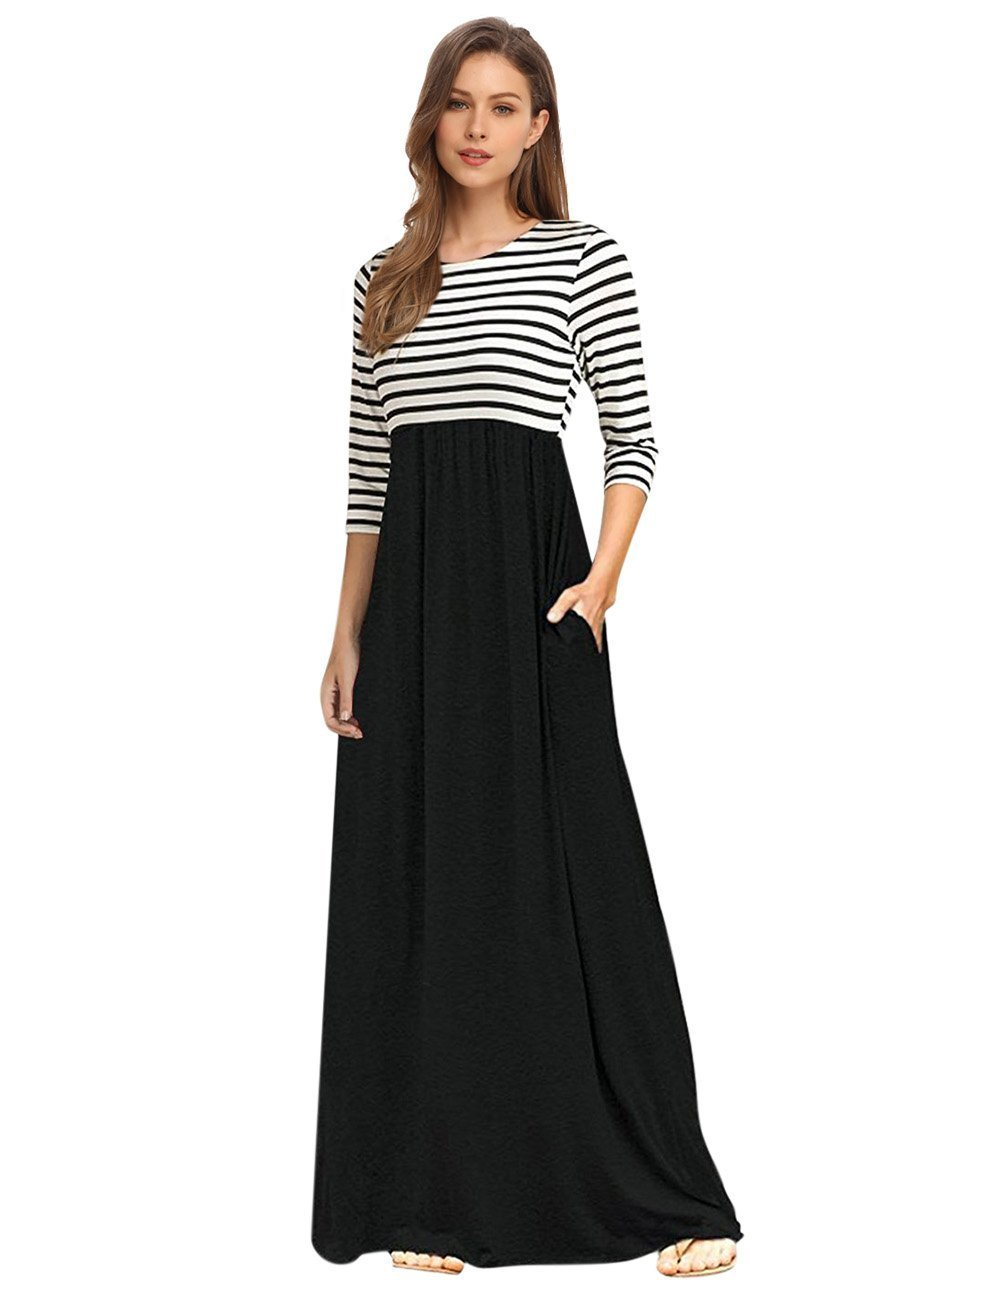 GloryStar Women's Striped Round Neck 3/4 Sleeve Casual Long Maxi Dress with Side Pockets Black M